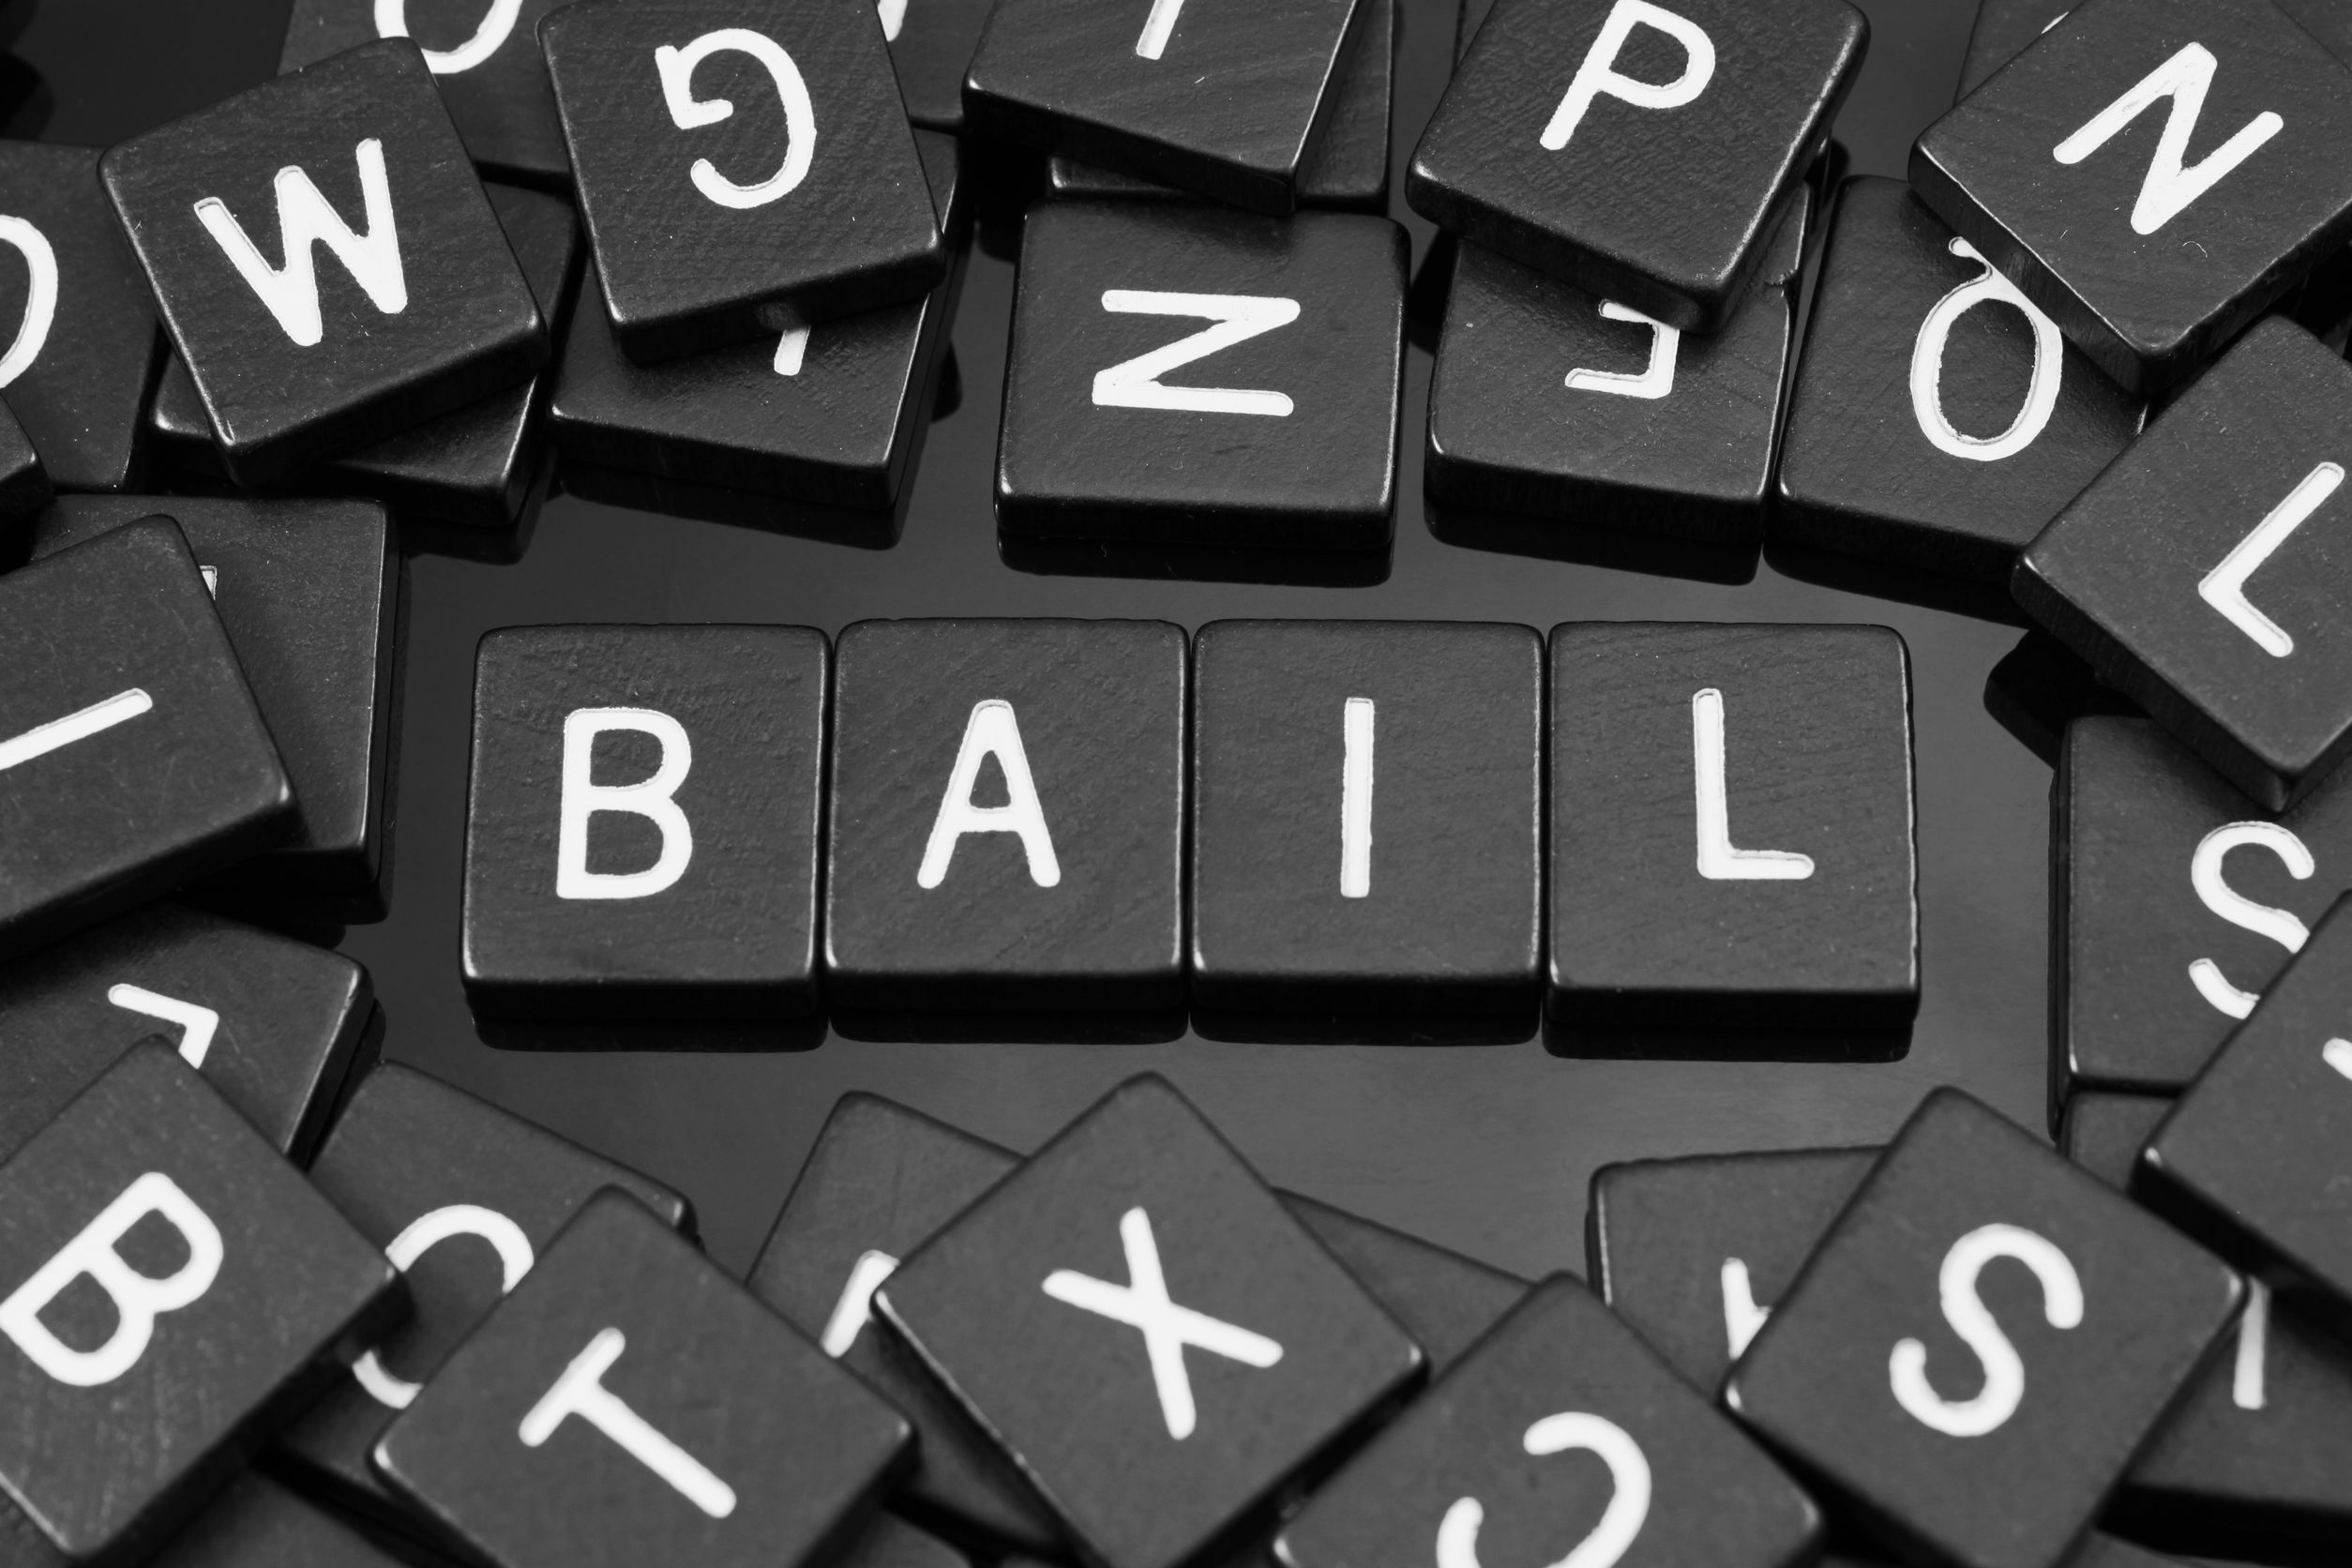 """black letter tiles spelling the word """"bail"""" on a reflective background"""